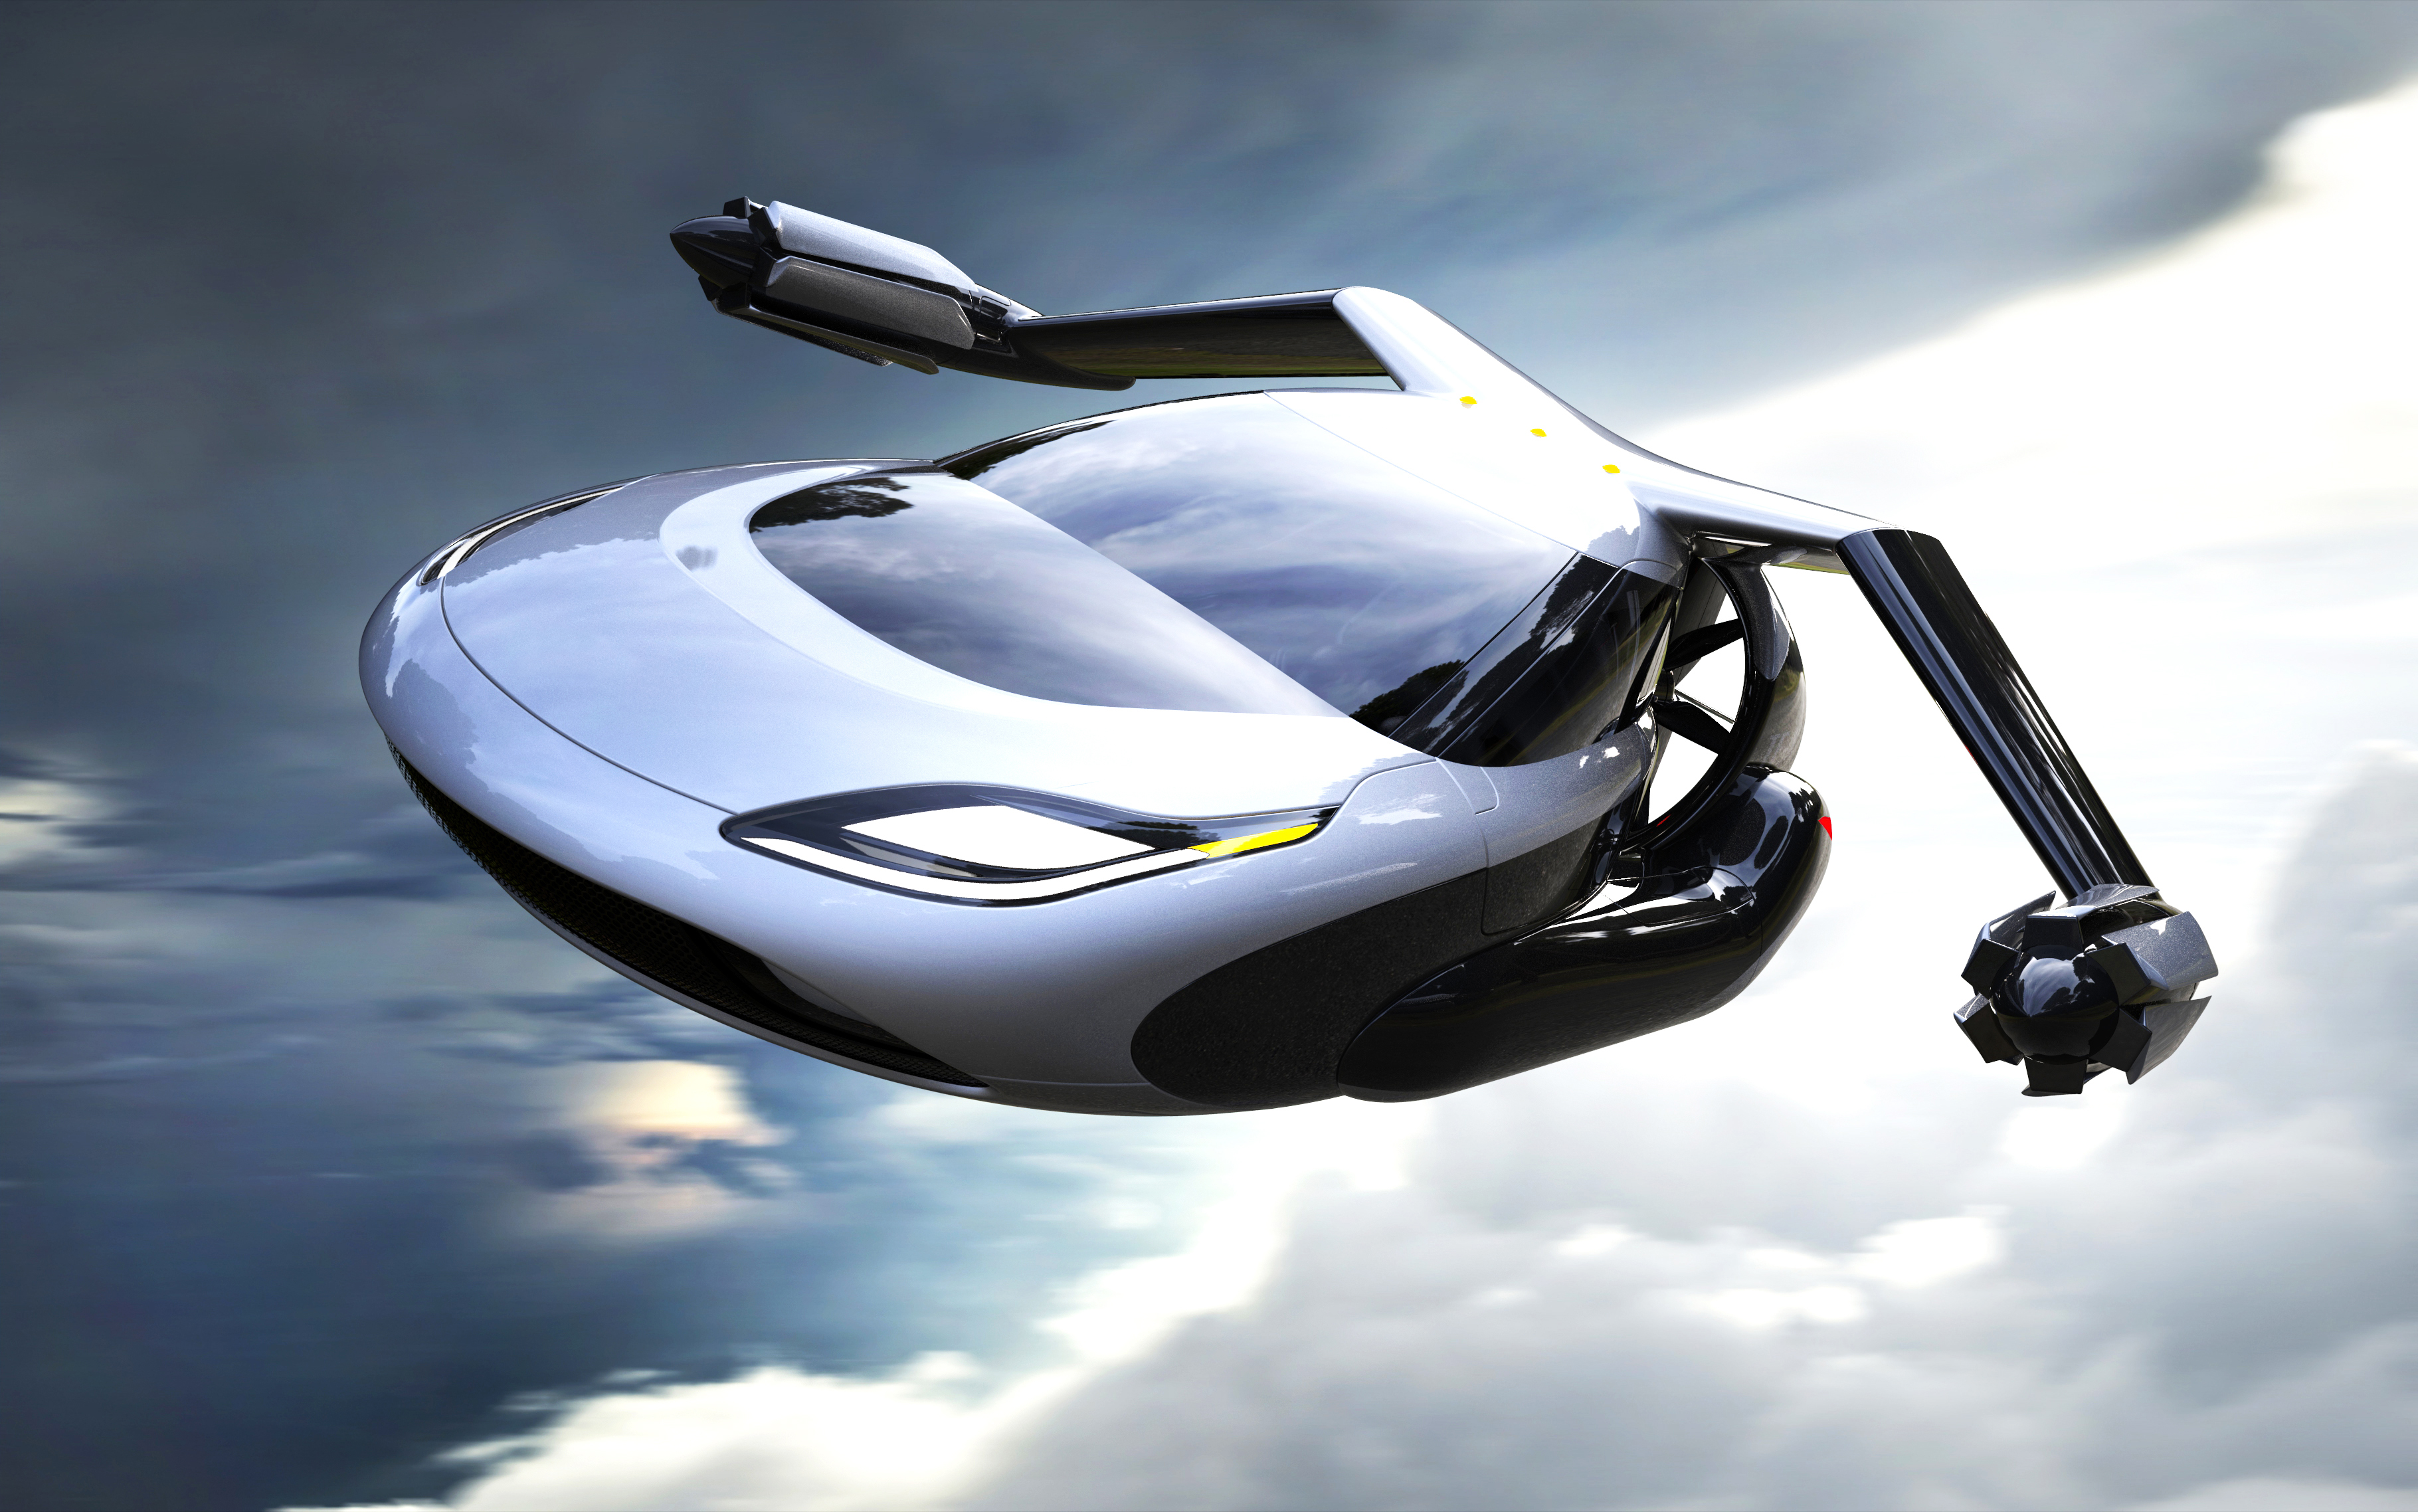 Terrafugia has just been granted permission to fly small, unmanned prototypes of their TF-X flying car by the FAA.